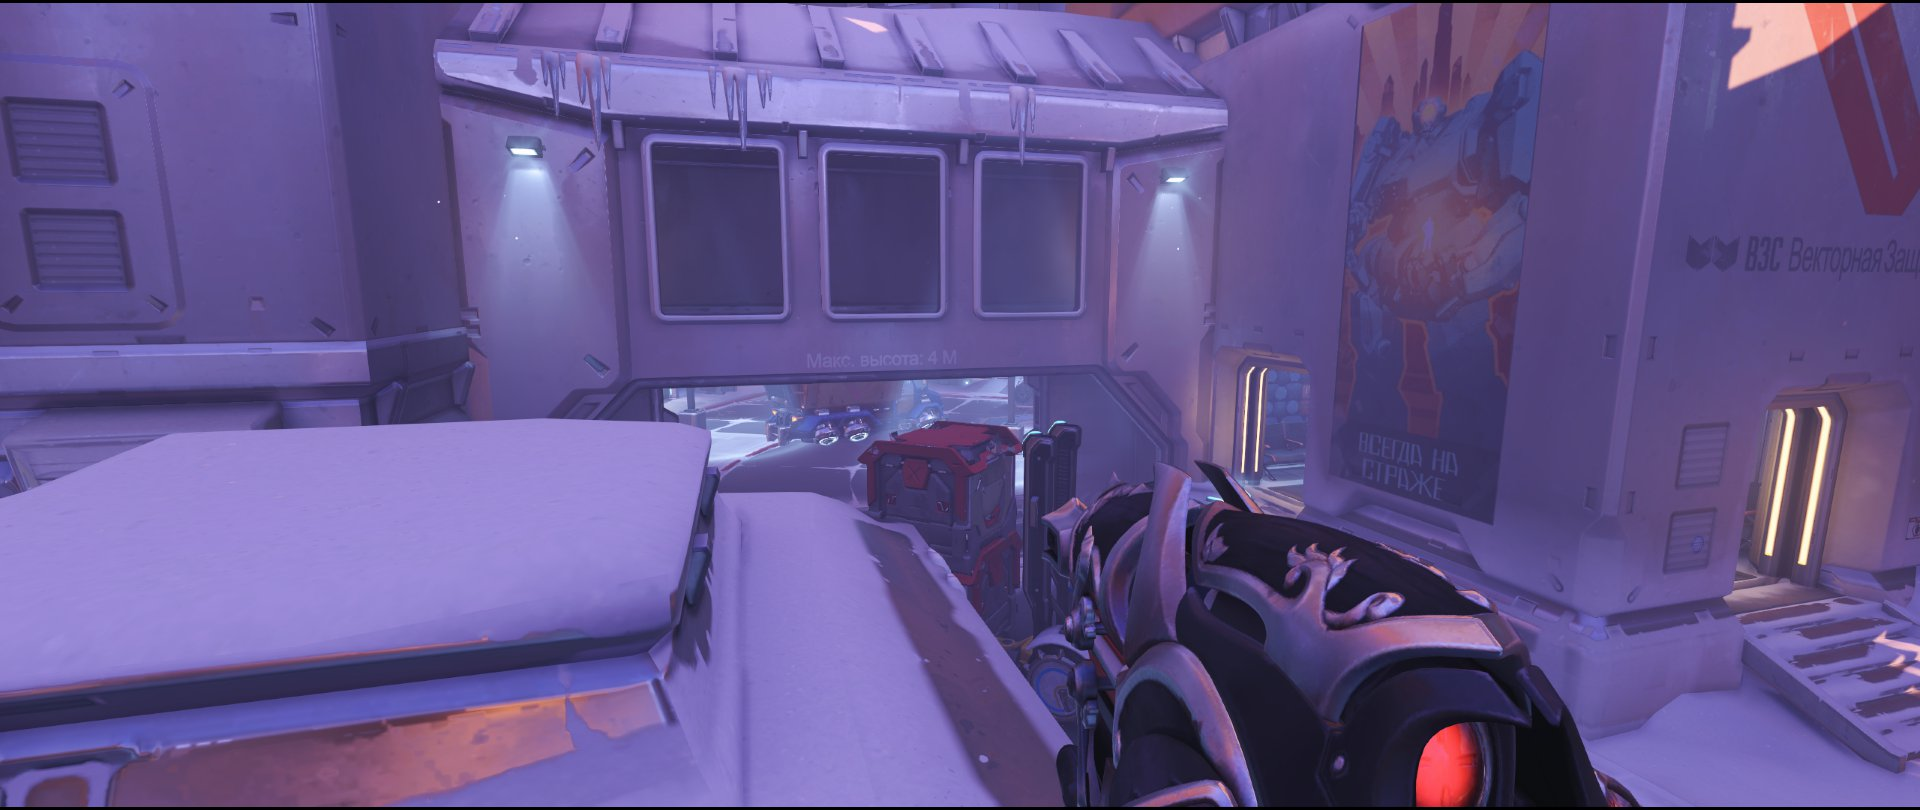 Hut to spawn view attack sniping spot Widowmaker Volskaya Industries Overwatch.jpg